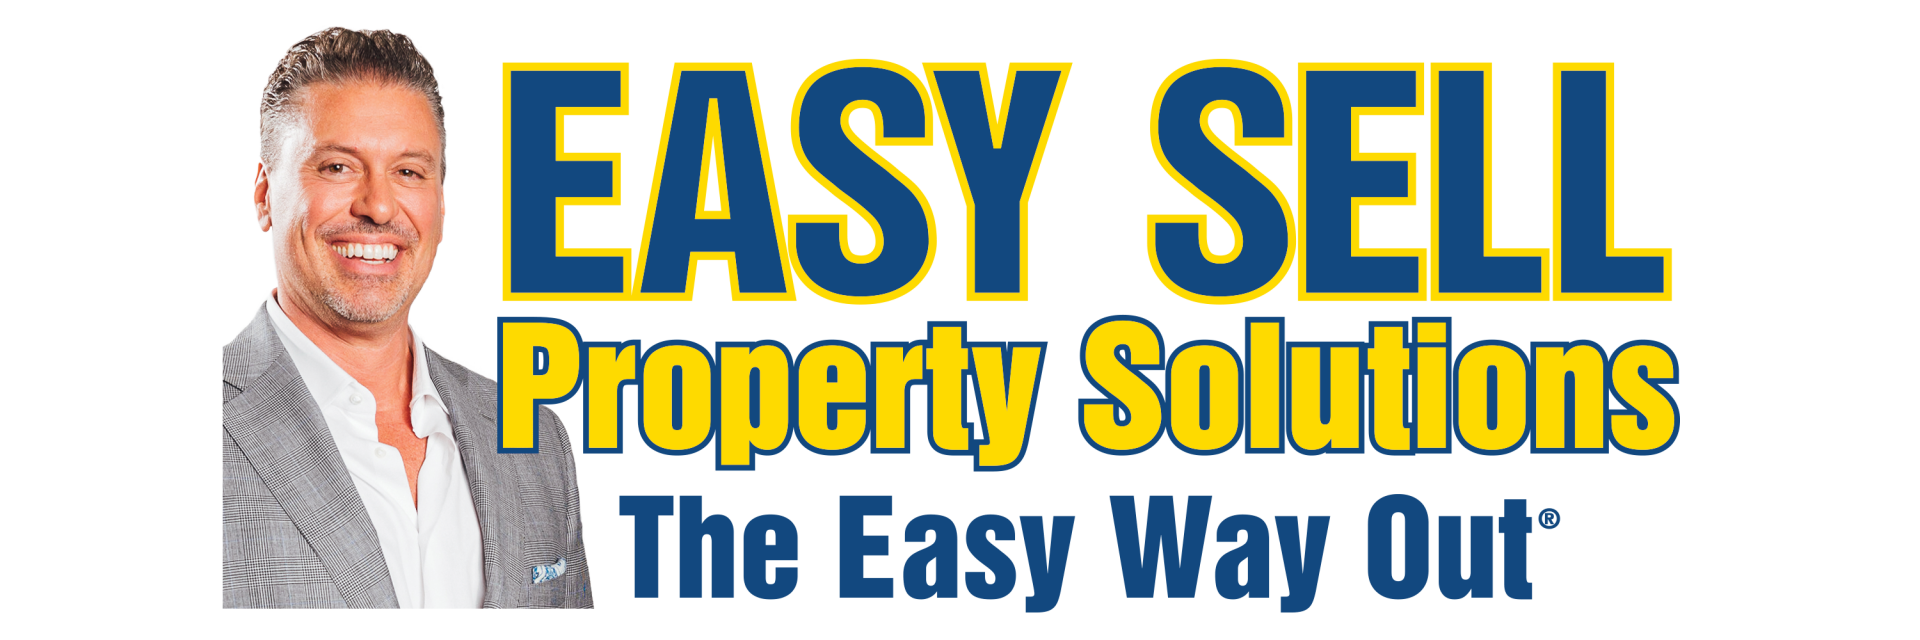 Easy Sell Property Solutions logo